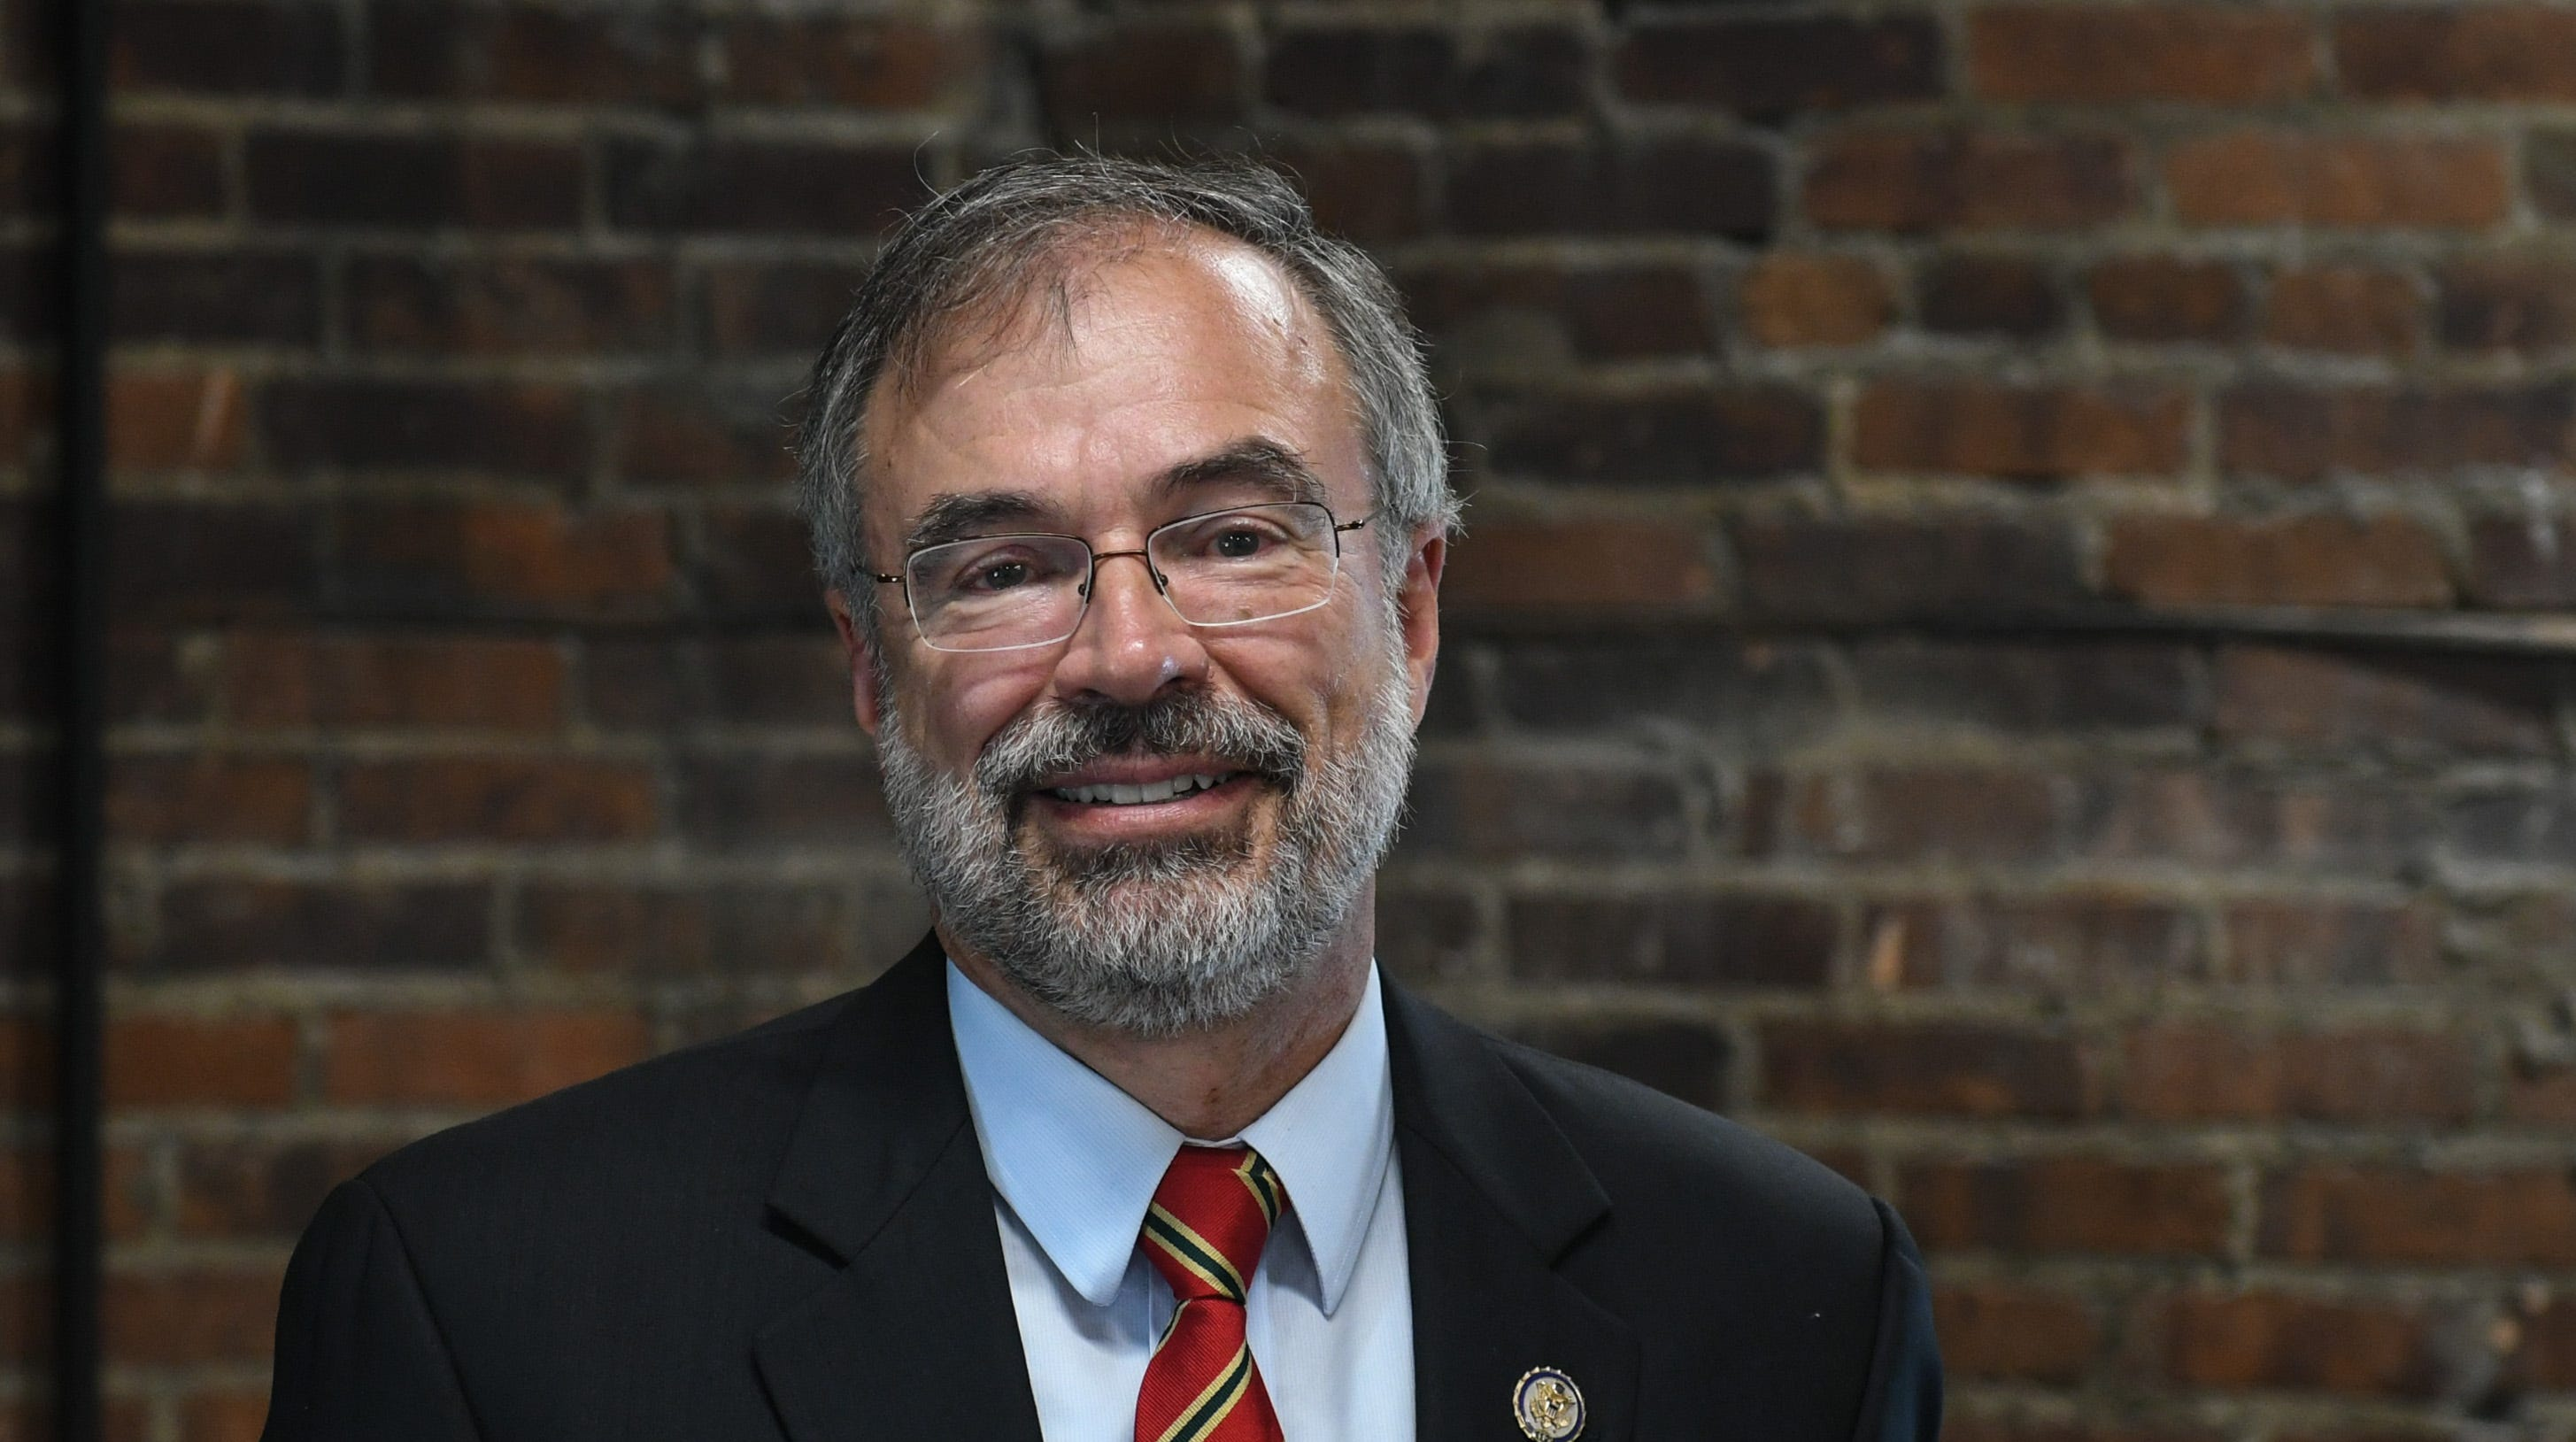 U.S. Rep. Andy Harris, R-Md.-1st, voted for a series of bills designed to protect the American taxpayer, collectively known as Tax Reform 2.0.